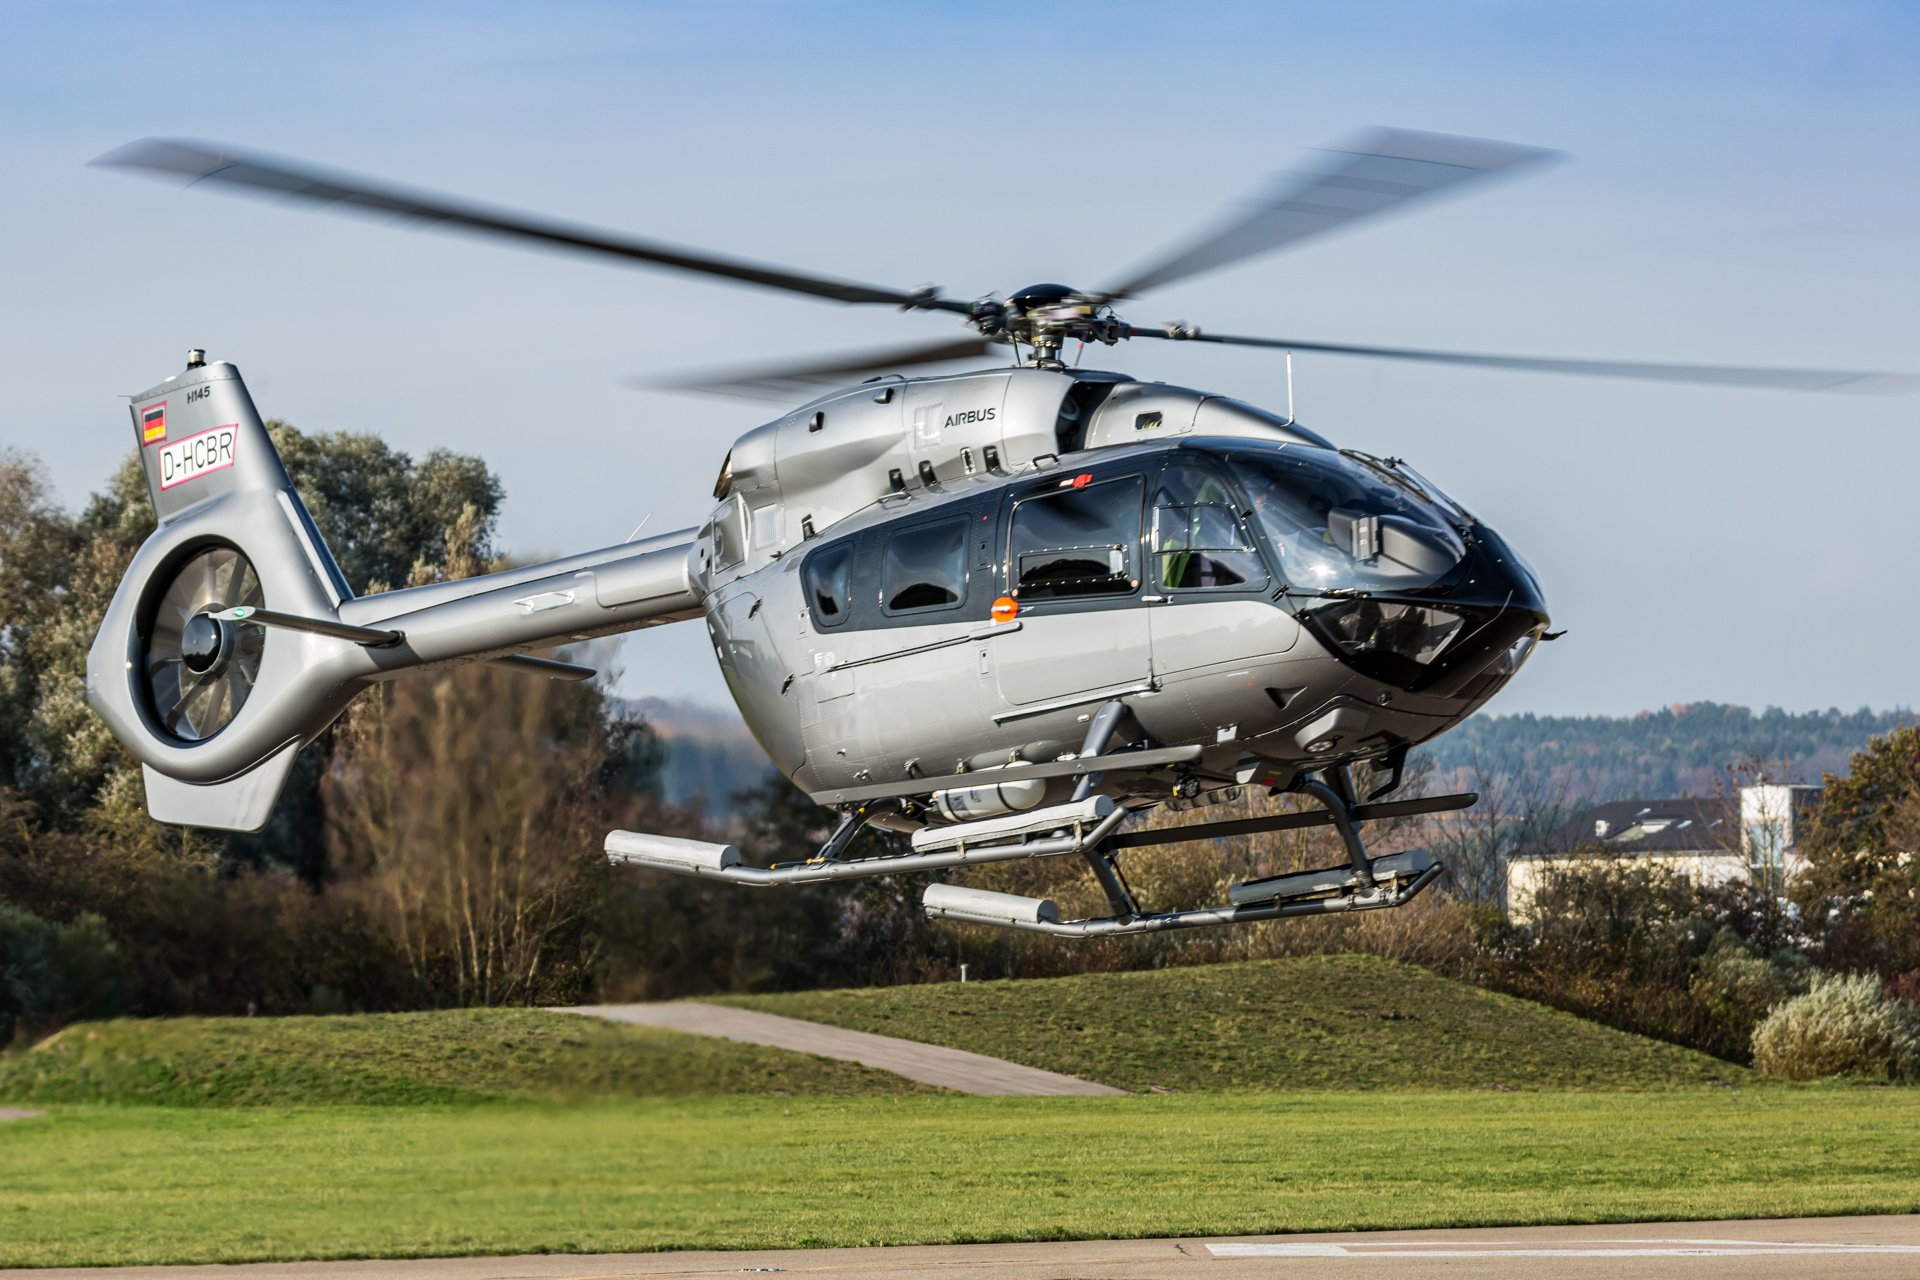 Airlift has taken the delivery of its first H145 helicopter, becoming the first operator of this model in Greece.